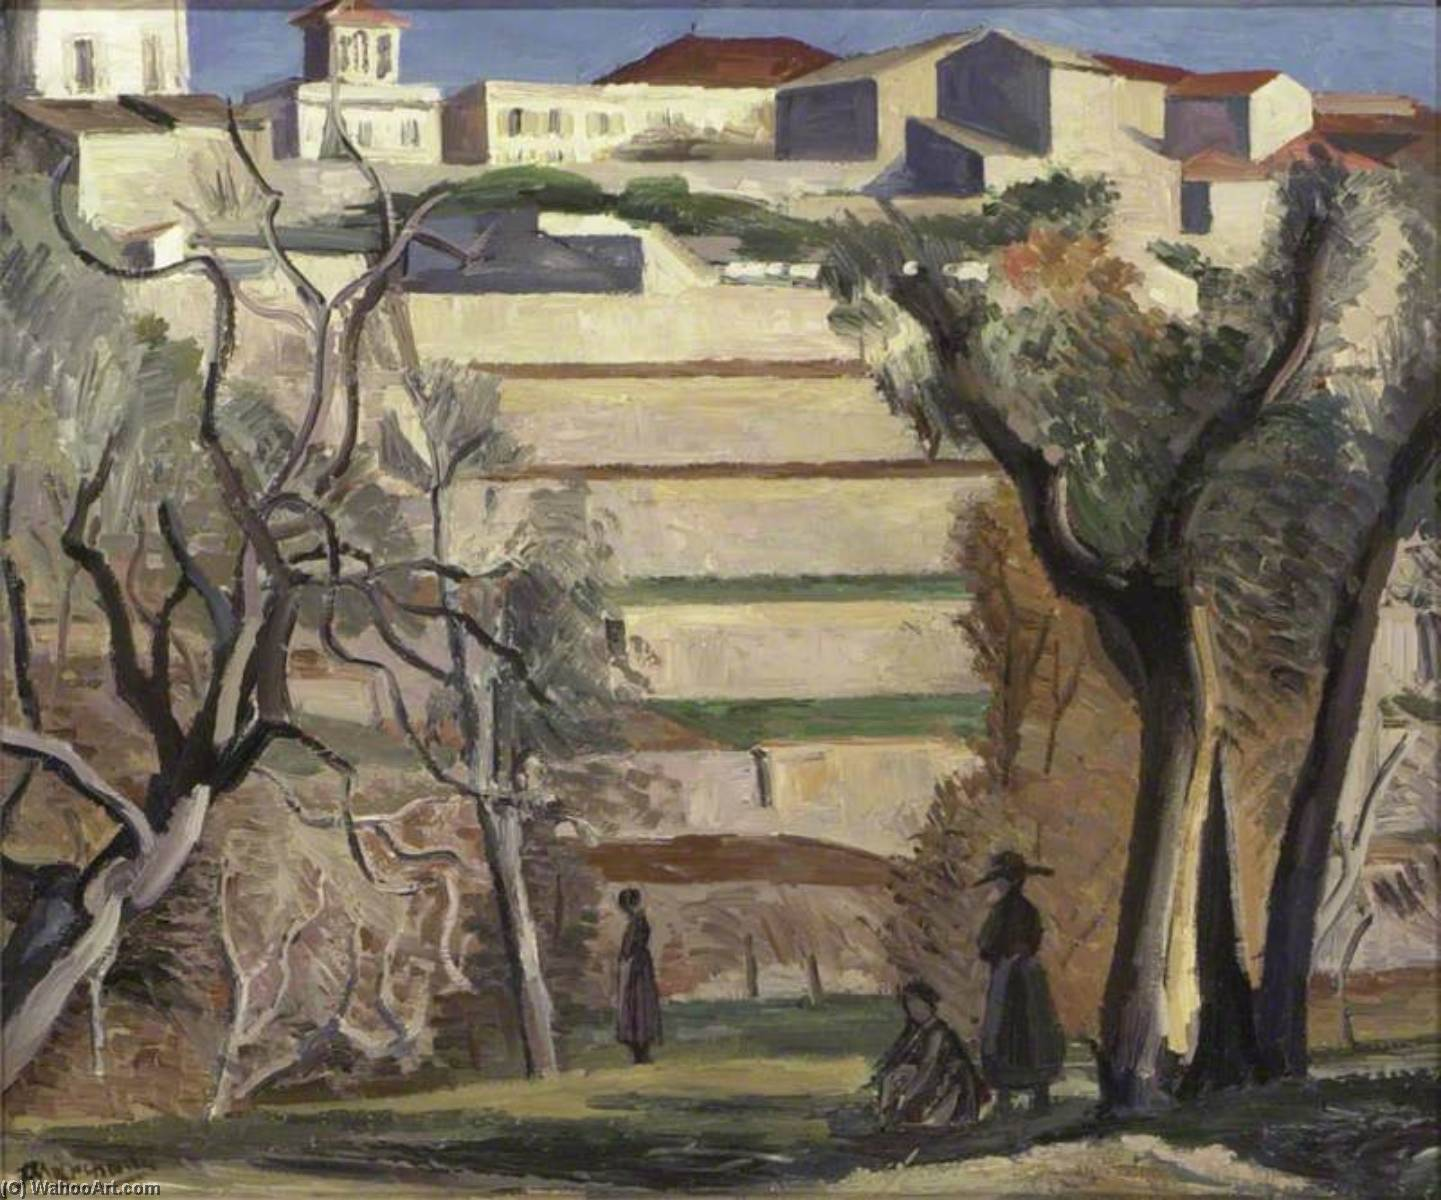 Les Terrasses, Oil On Canvas by Jean Hippolyte Marchand (1883-1940)